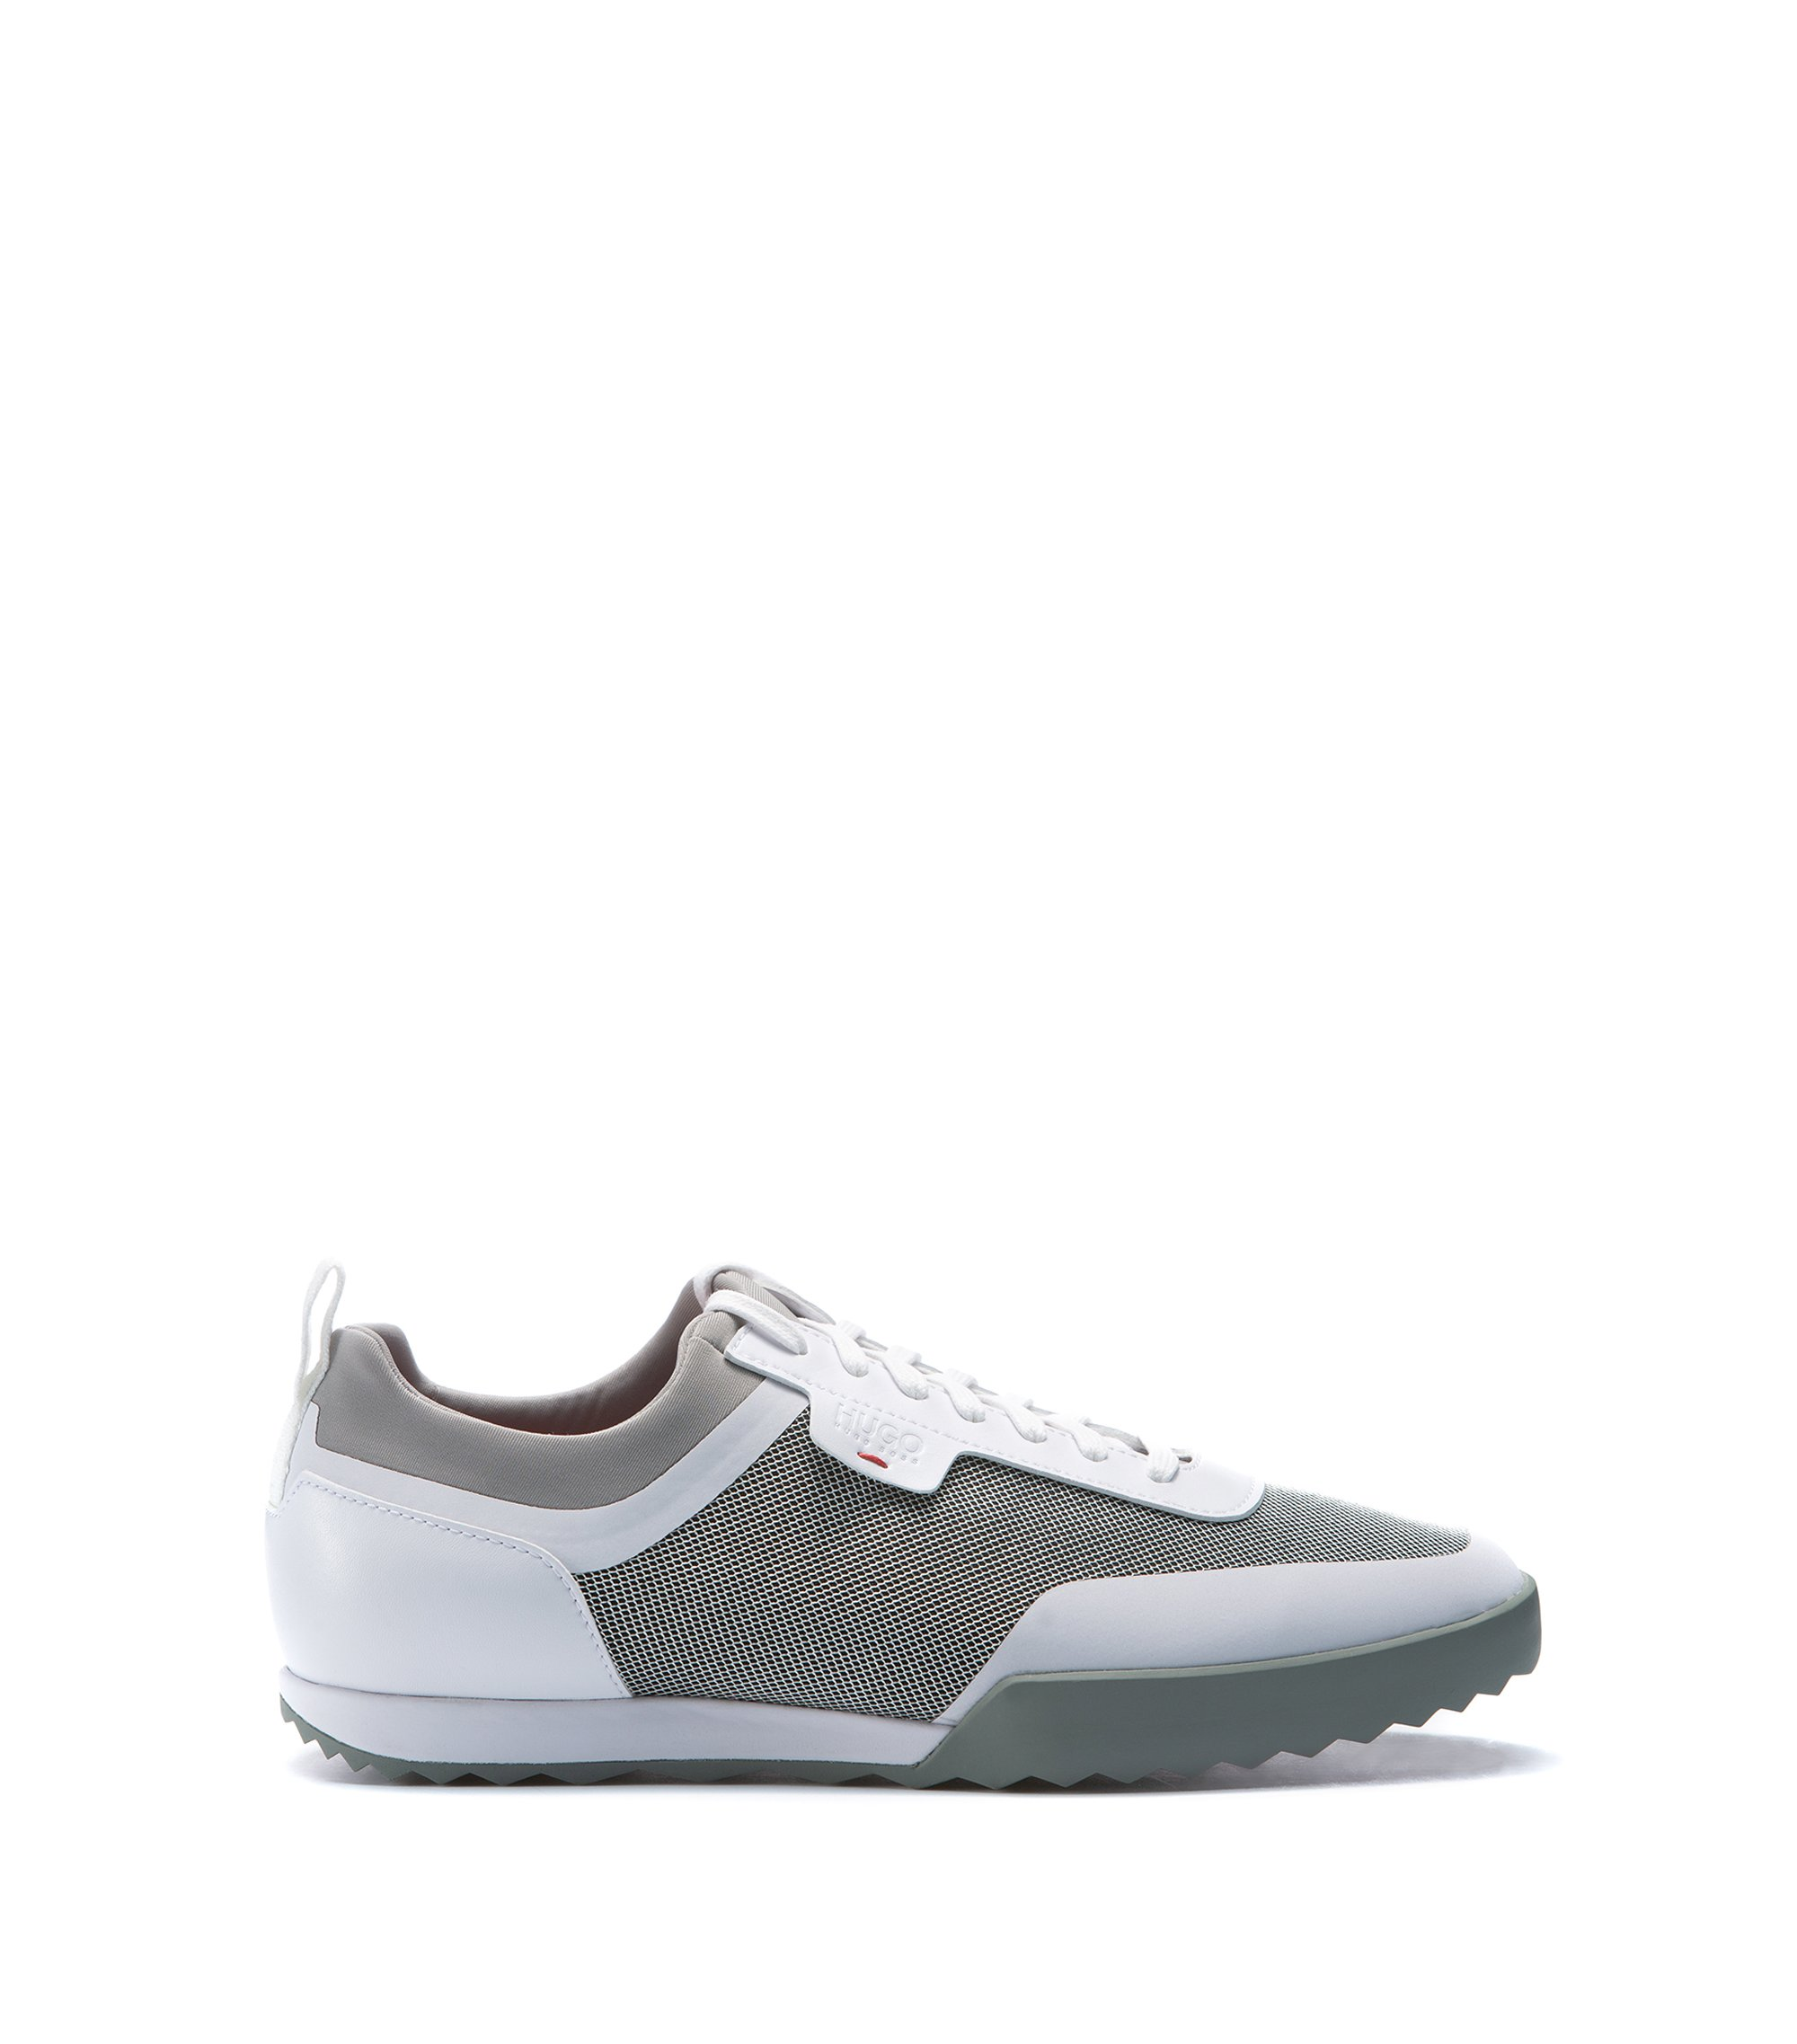 Sneakers low-top in tessuto tecnico misto, Bianco